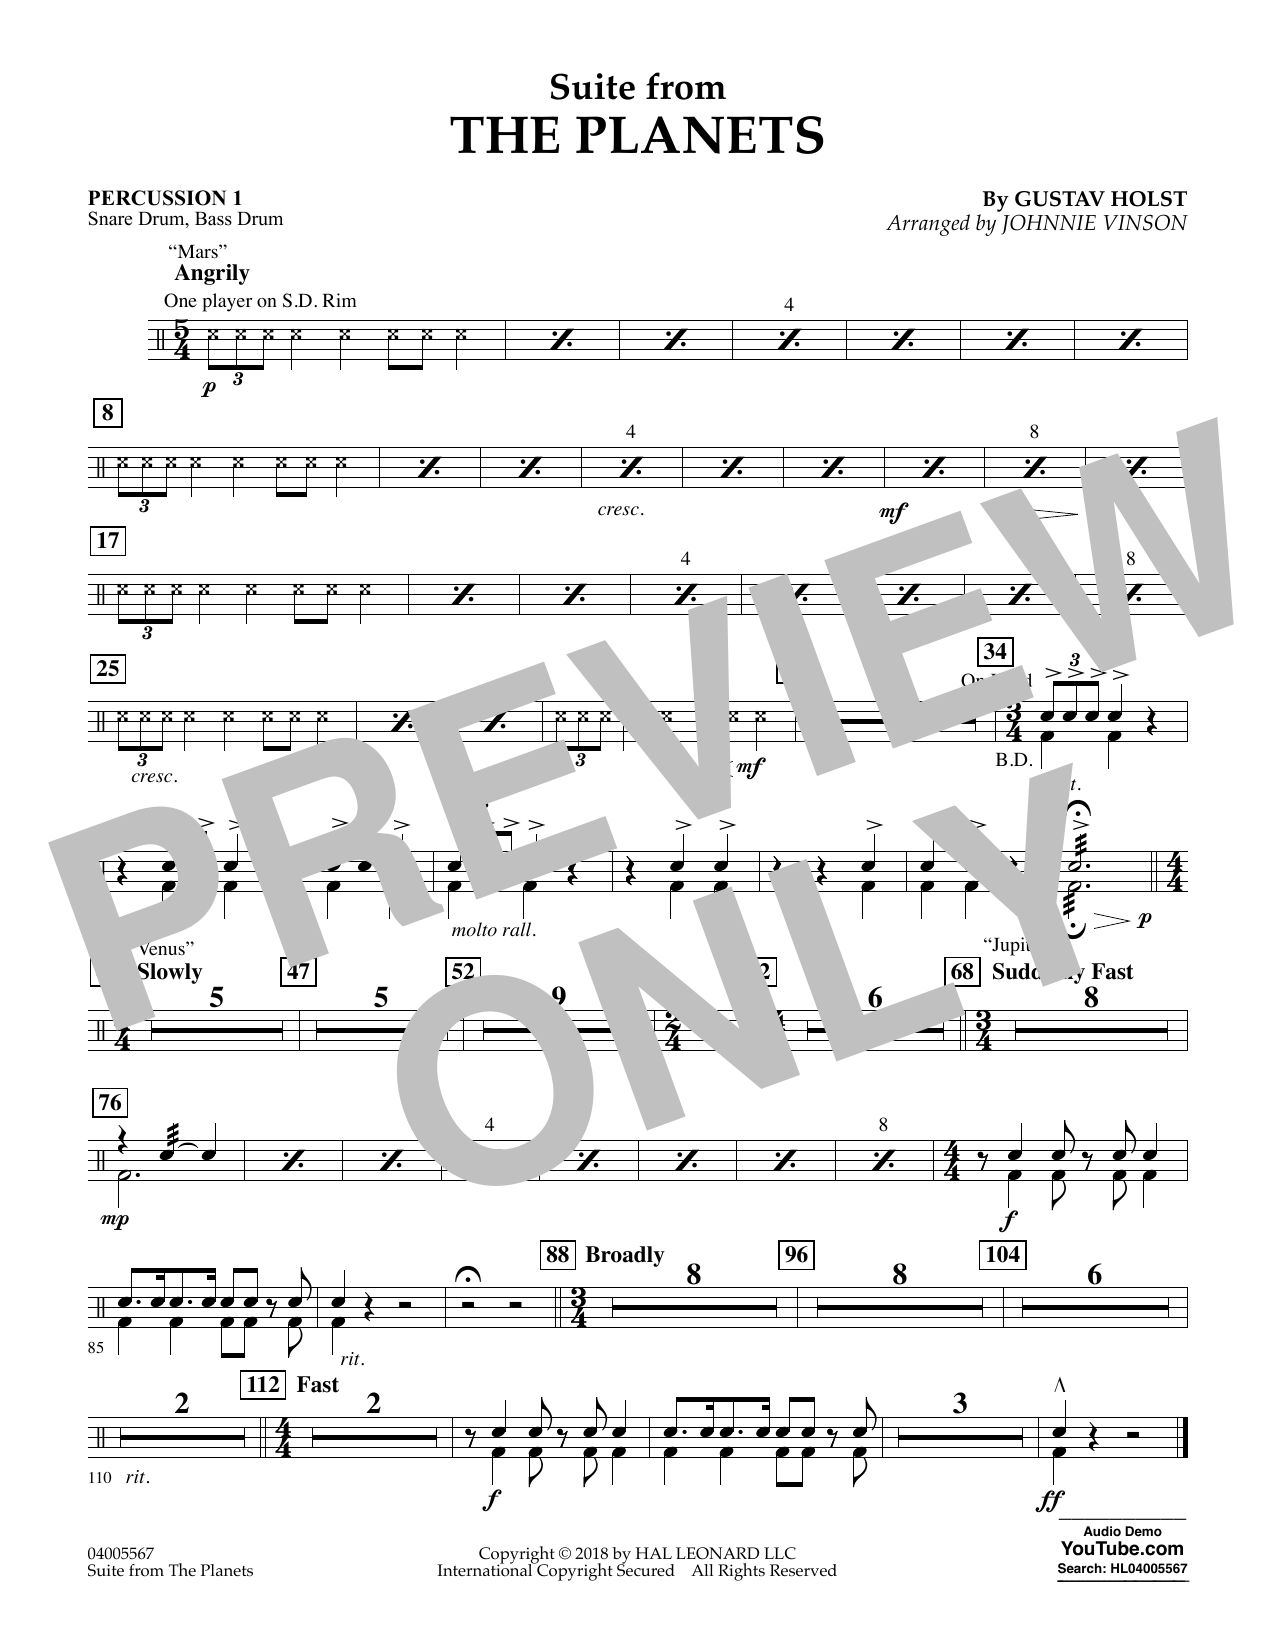 Suite from the Planets - Percussion 1 (Flex-Band)